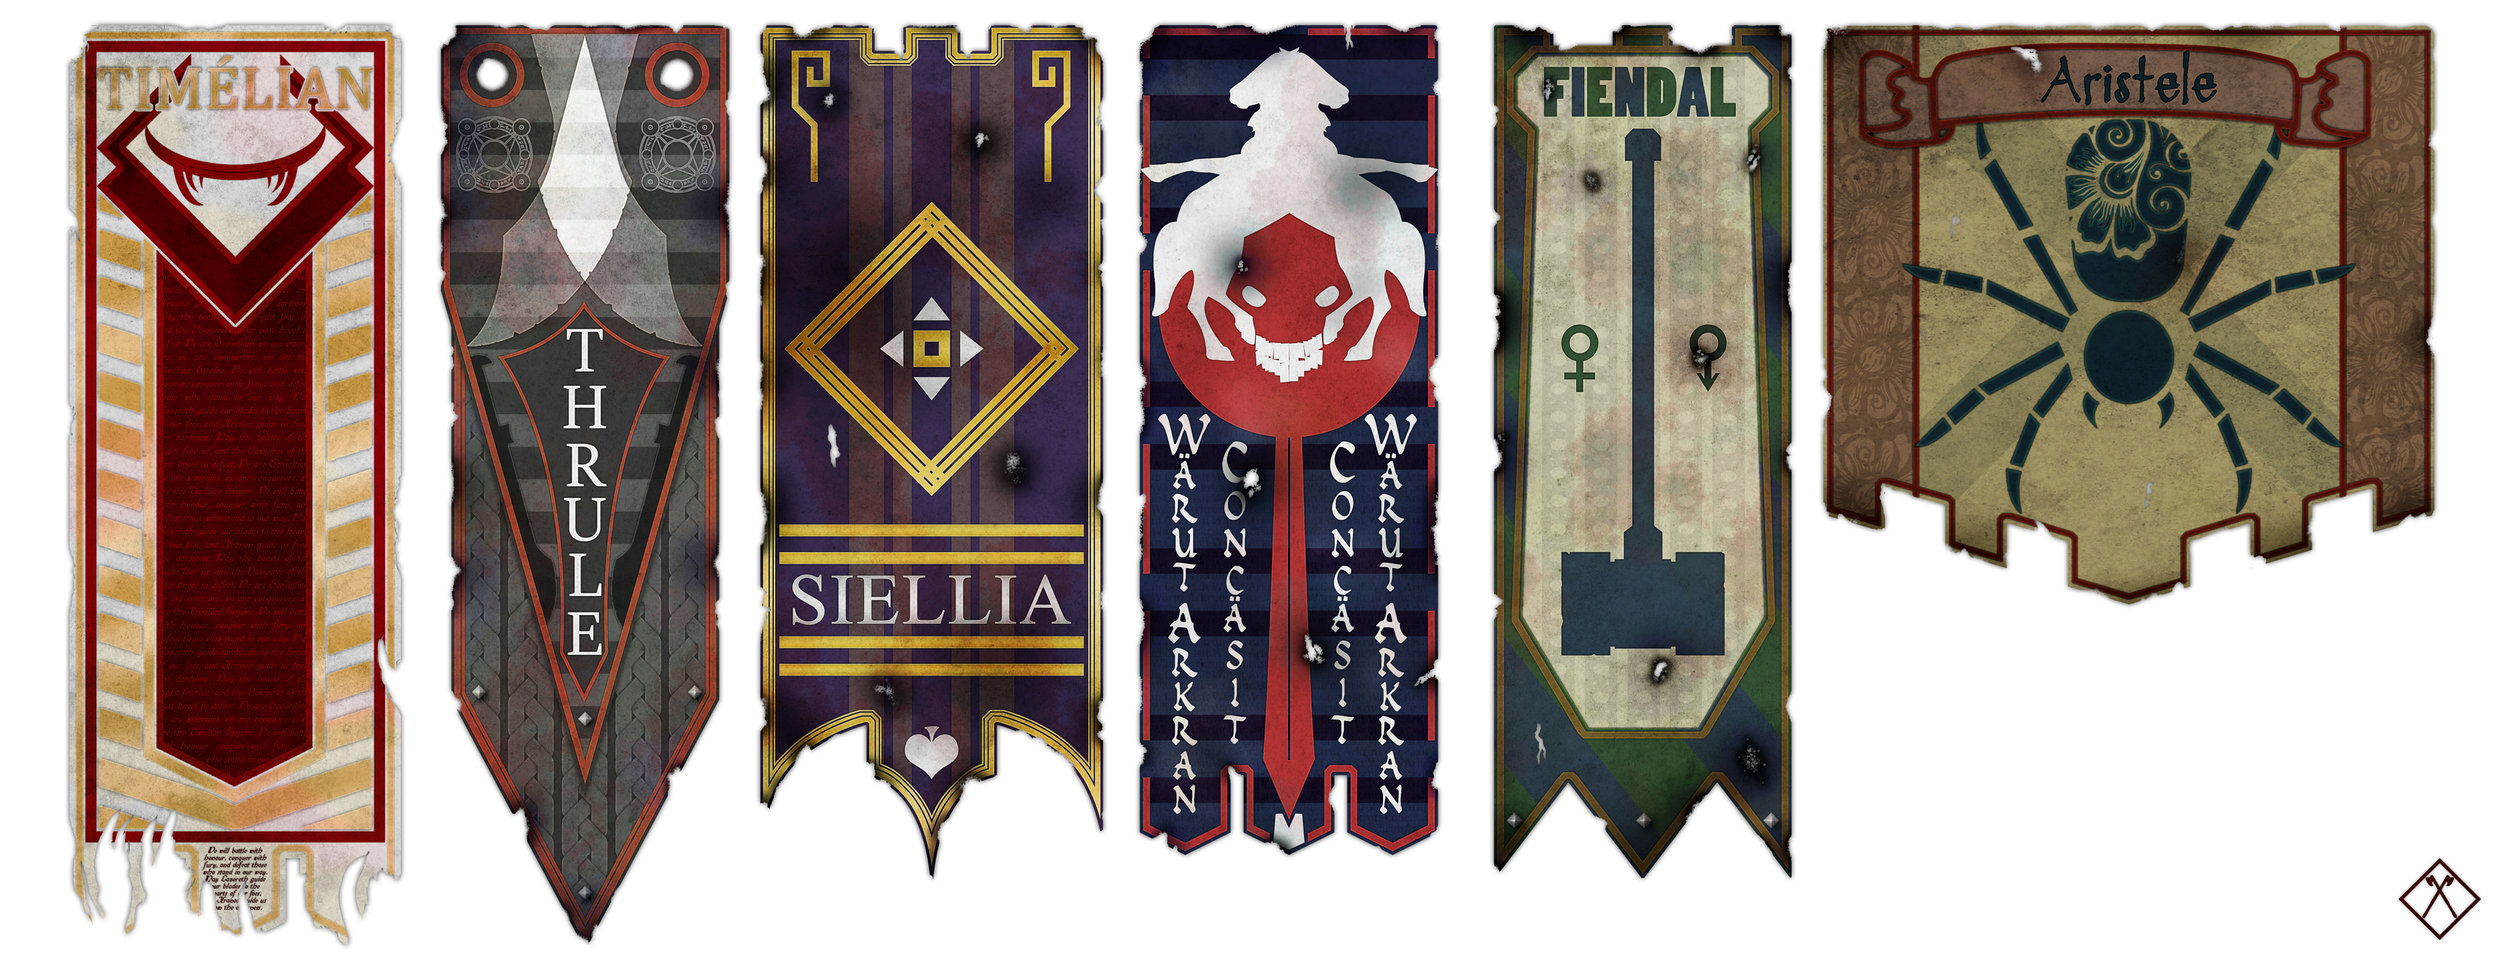 From left to right: Timélian Empire, Thrulian Empire, Province of Siellia, Kingdom of Fiendal, Dens of Aristele.